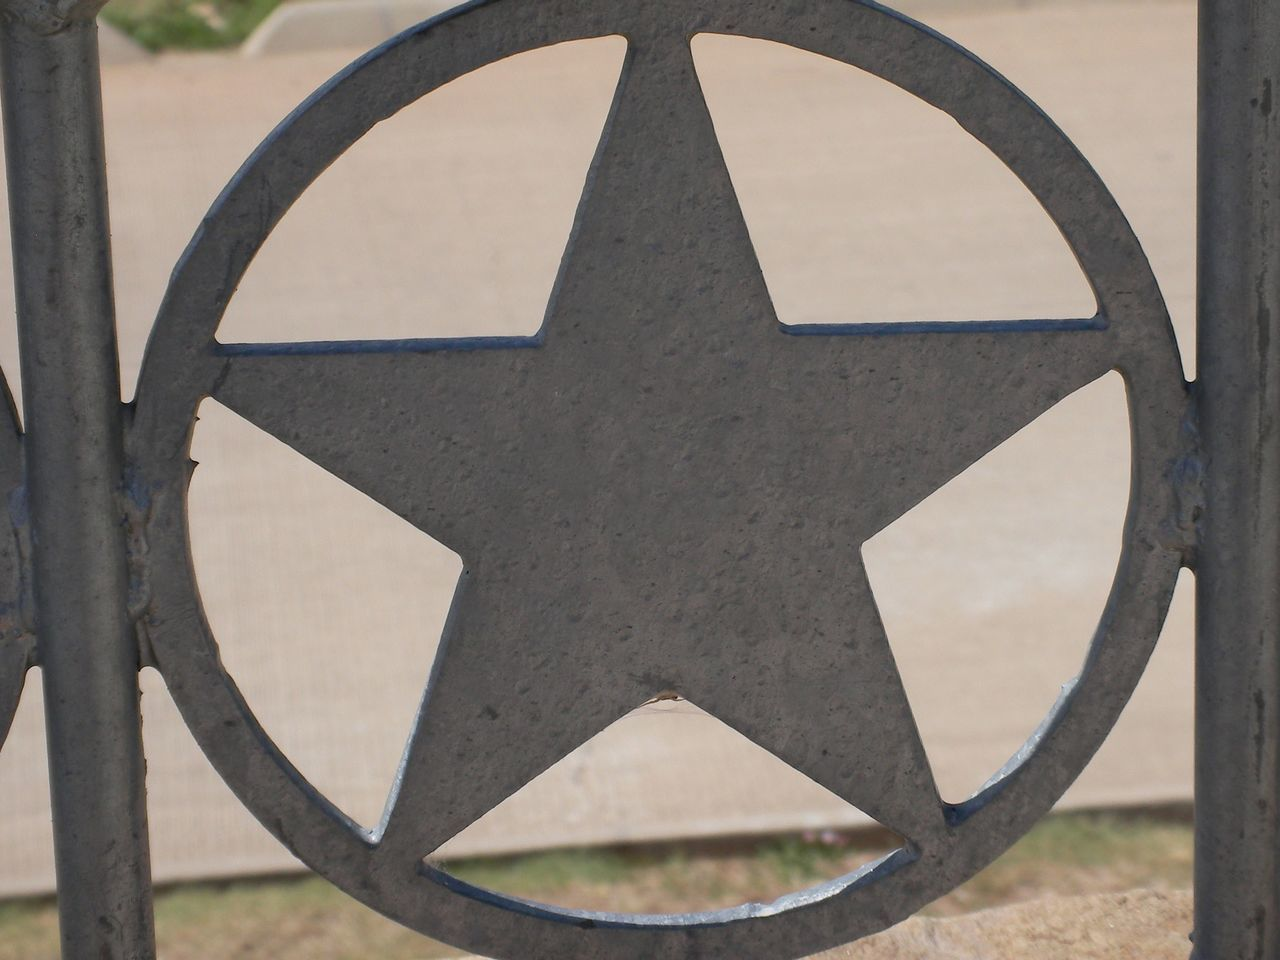 Architecture Blurry Close Up Close-up Day Freedom Ground Highway Metal Metallic Nature No People Object Outdoors Railing Rest Stop Silver  Skyline Star Texas United States United States Of America USA USA Photos USAtrip